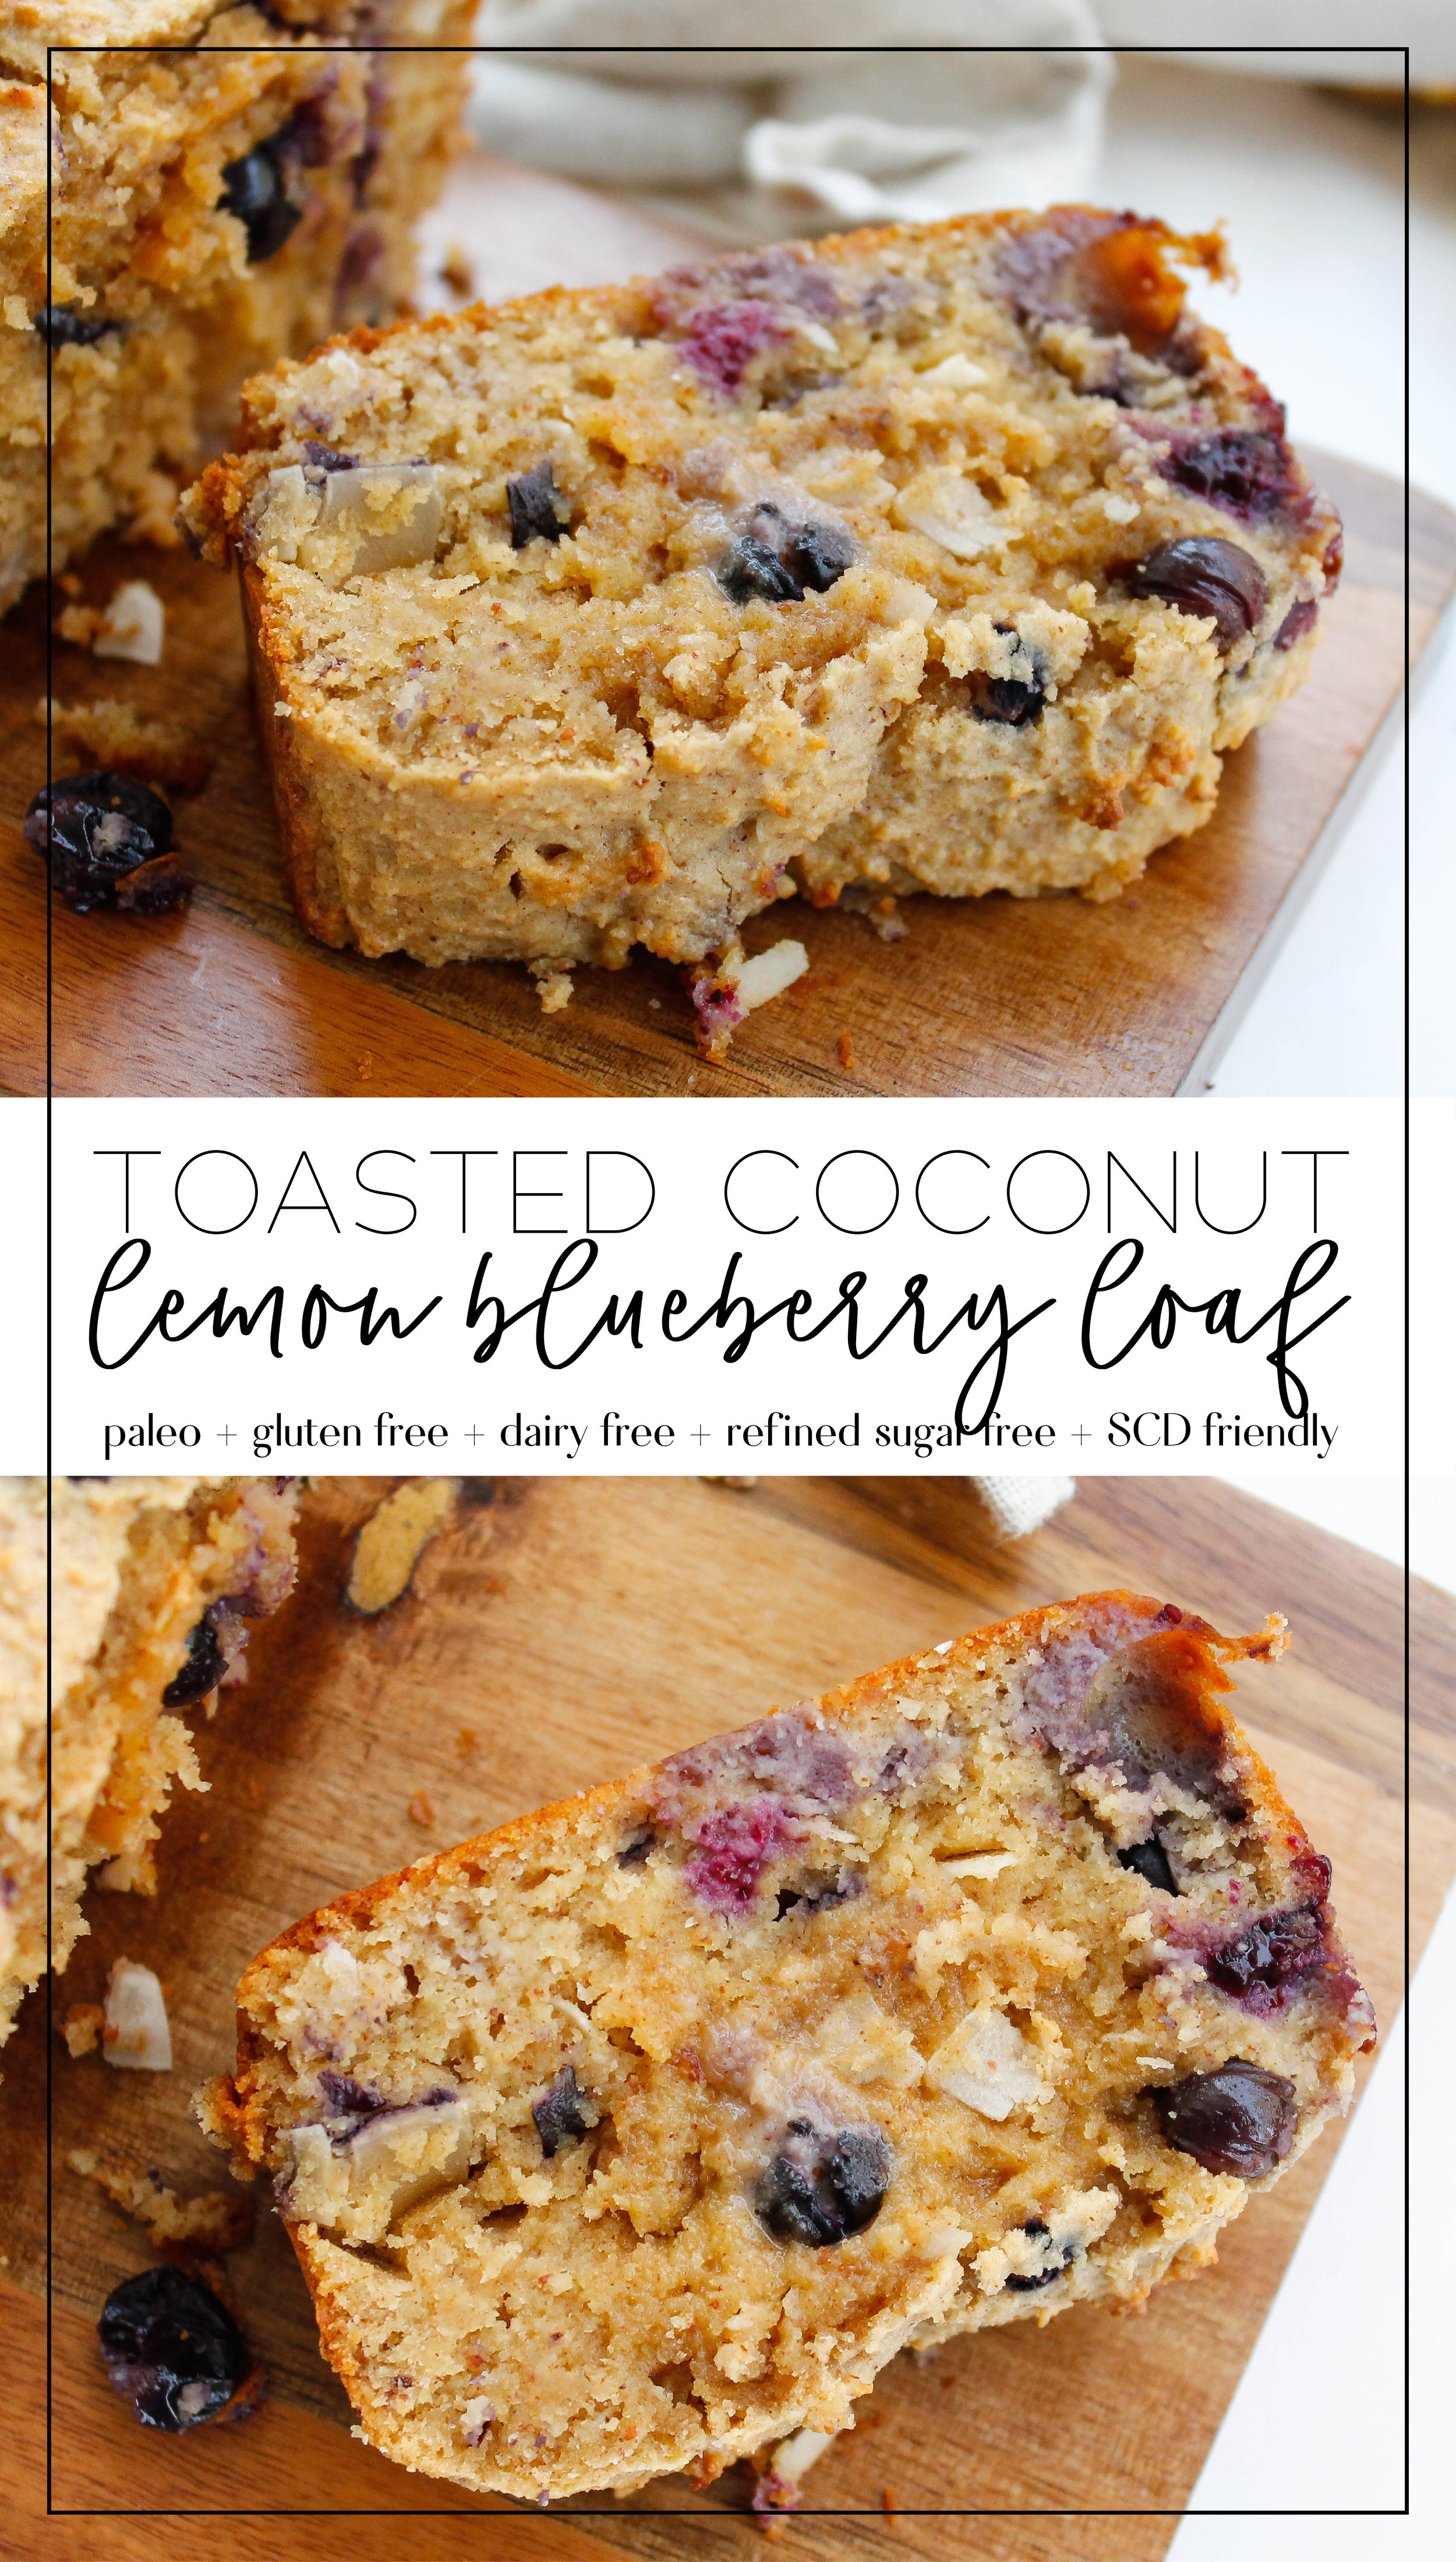 Paleo Toasted Coconut Lemon Blueberry Bread || This bread is perfectly zesty for summertime! Full of nutrients and healthy fat but free from gluten, dairy and refined sugars. It's also Specific Carbohydrate Diet friendly! Click through for the full recipe.